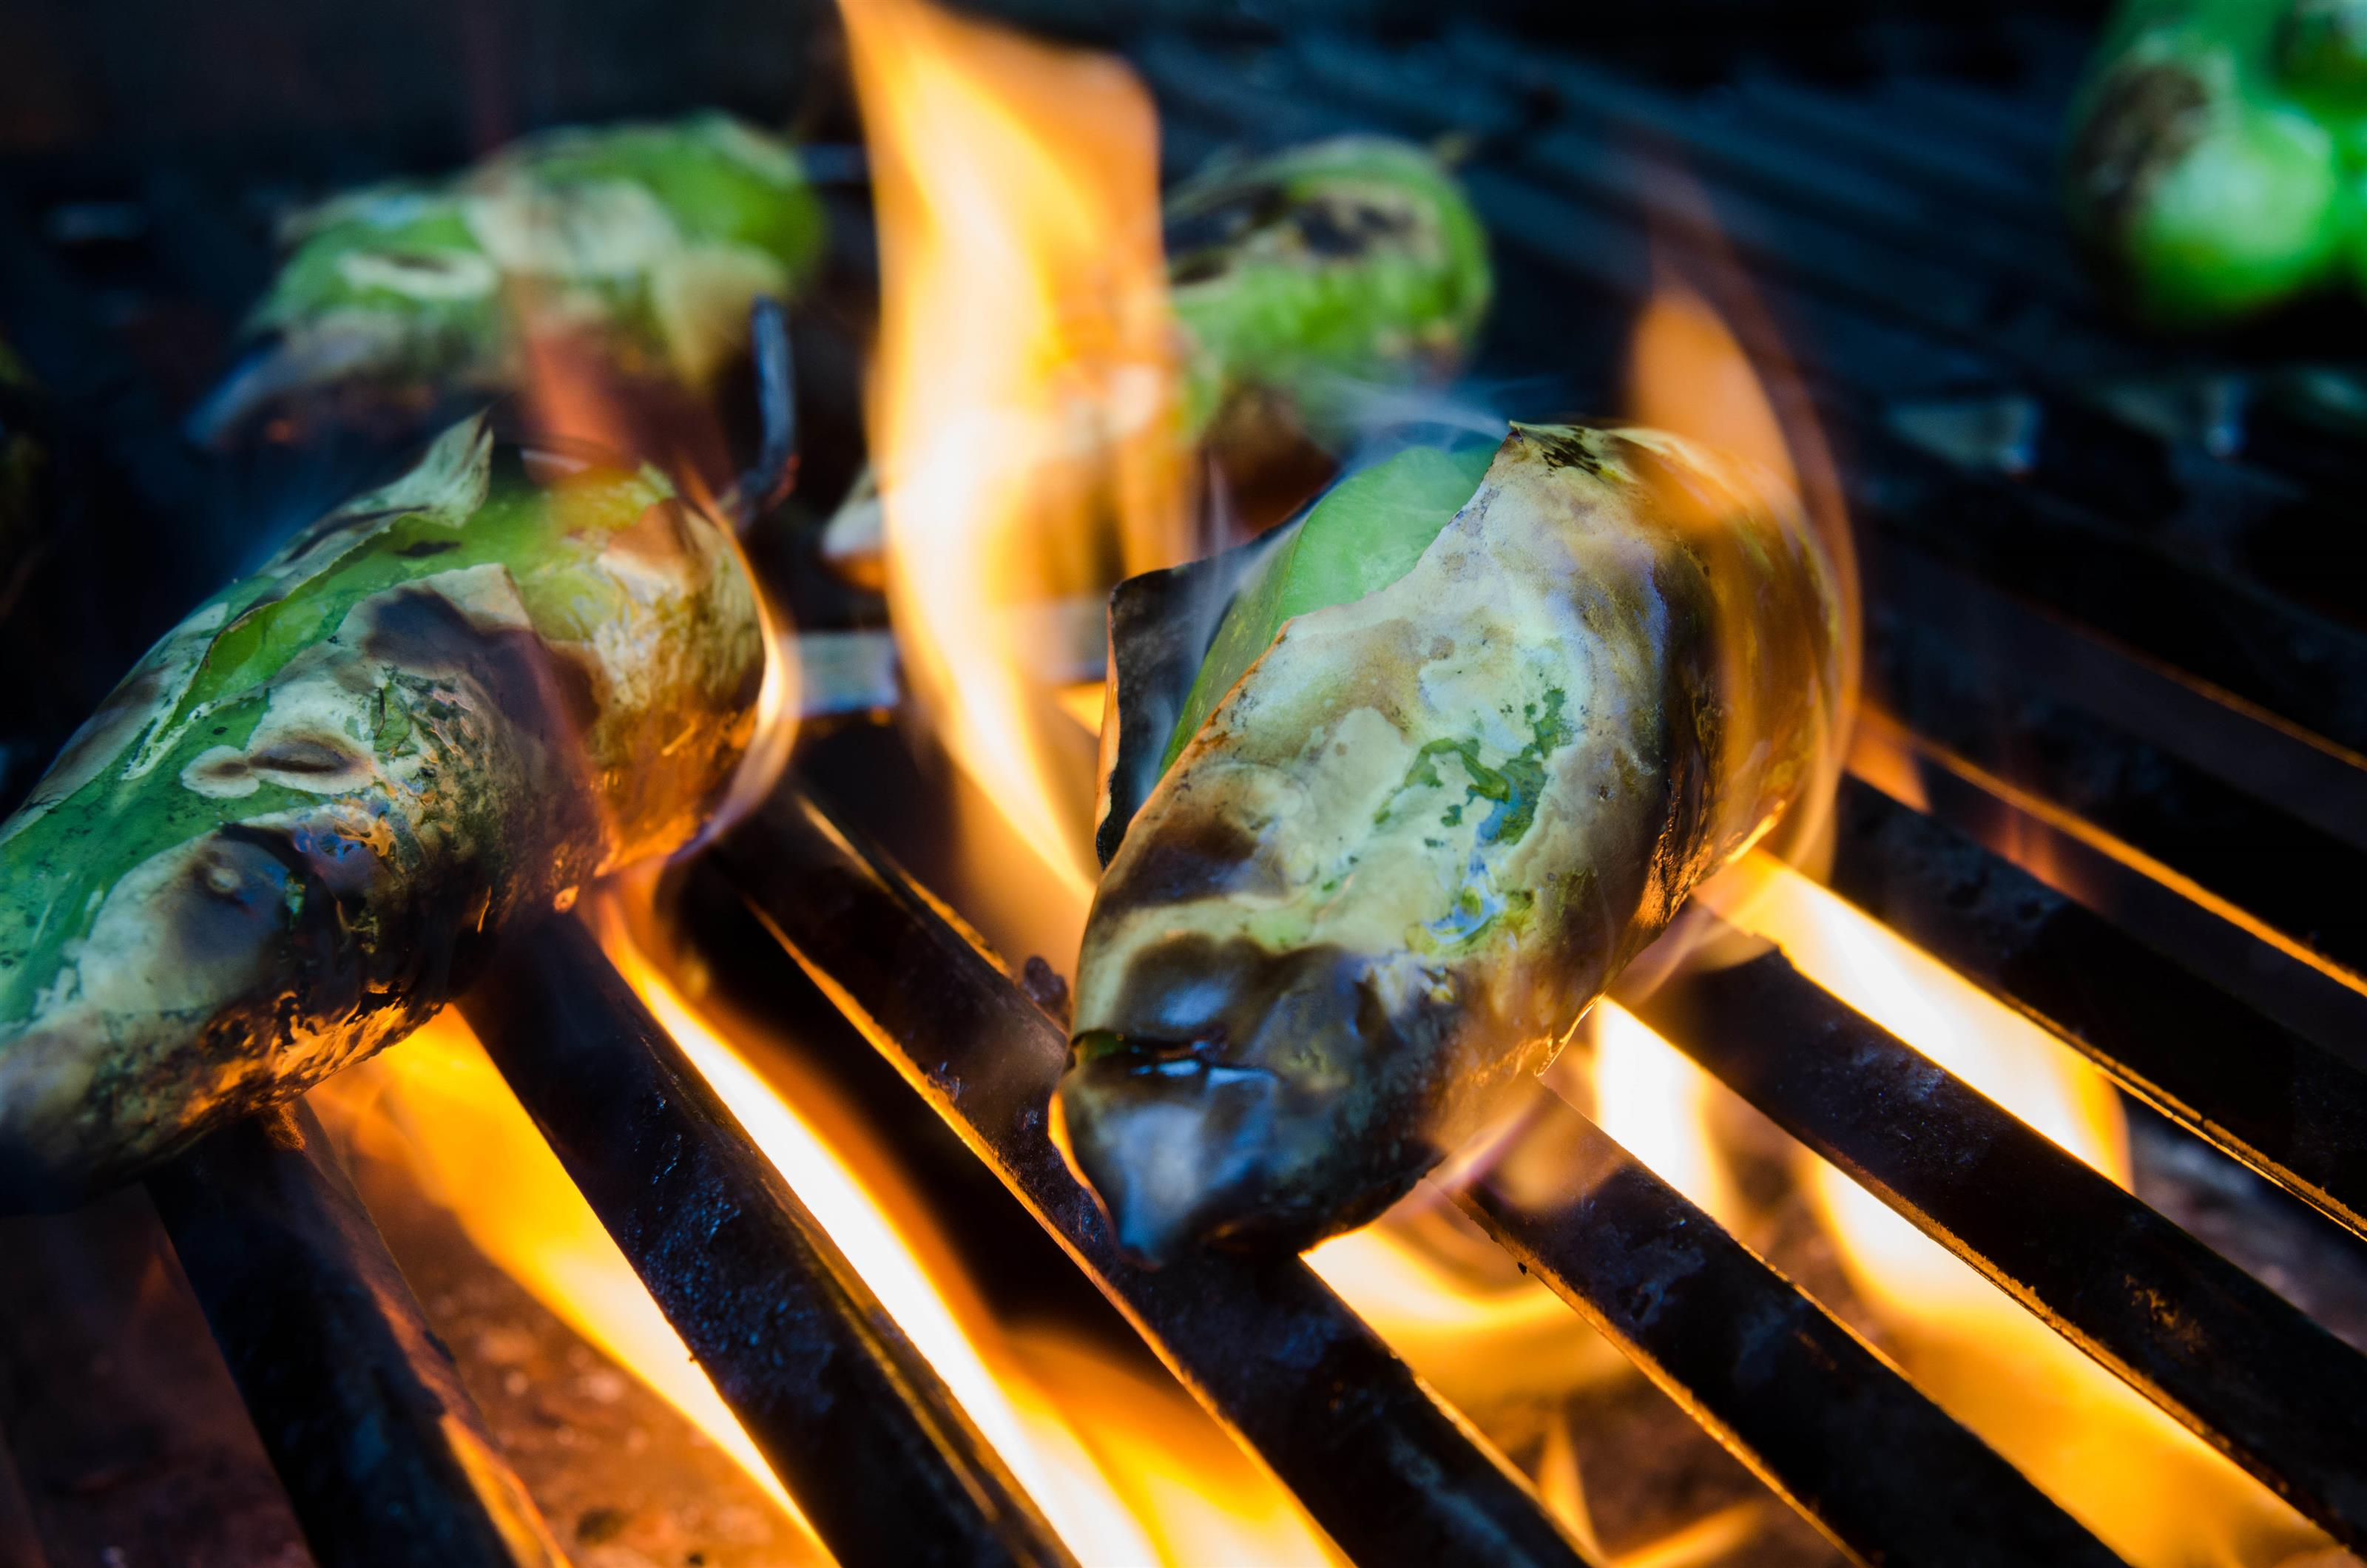 Fire roasted jalapenos on a grill